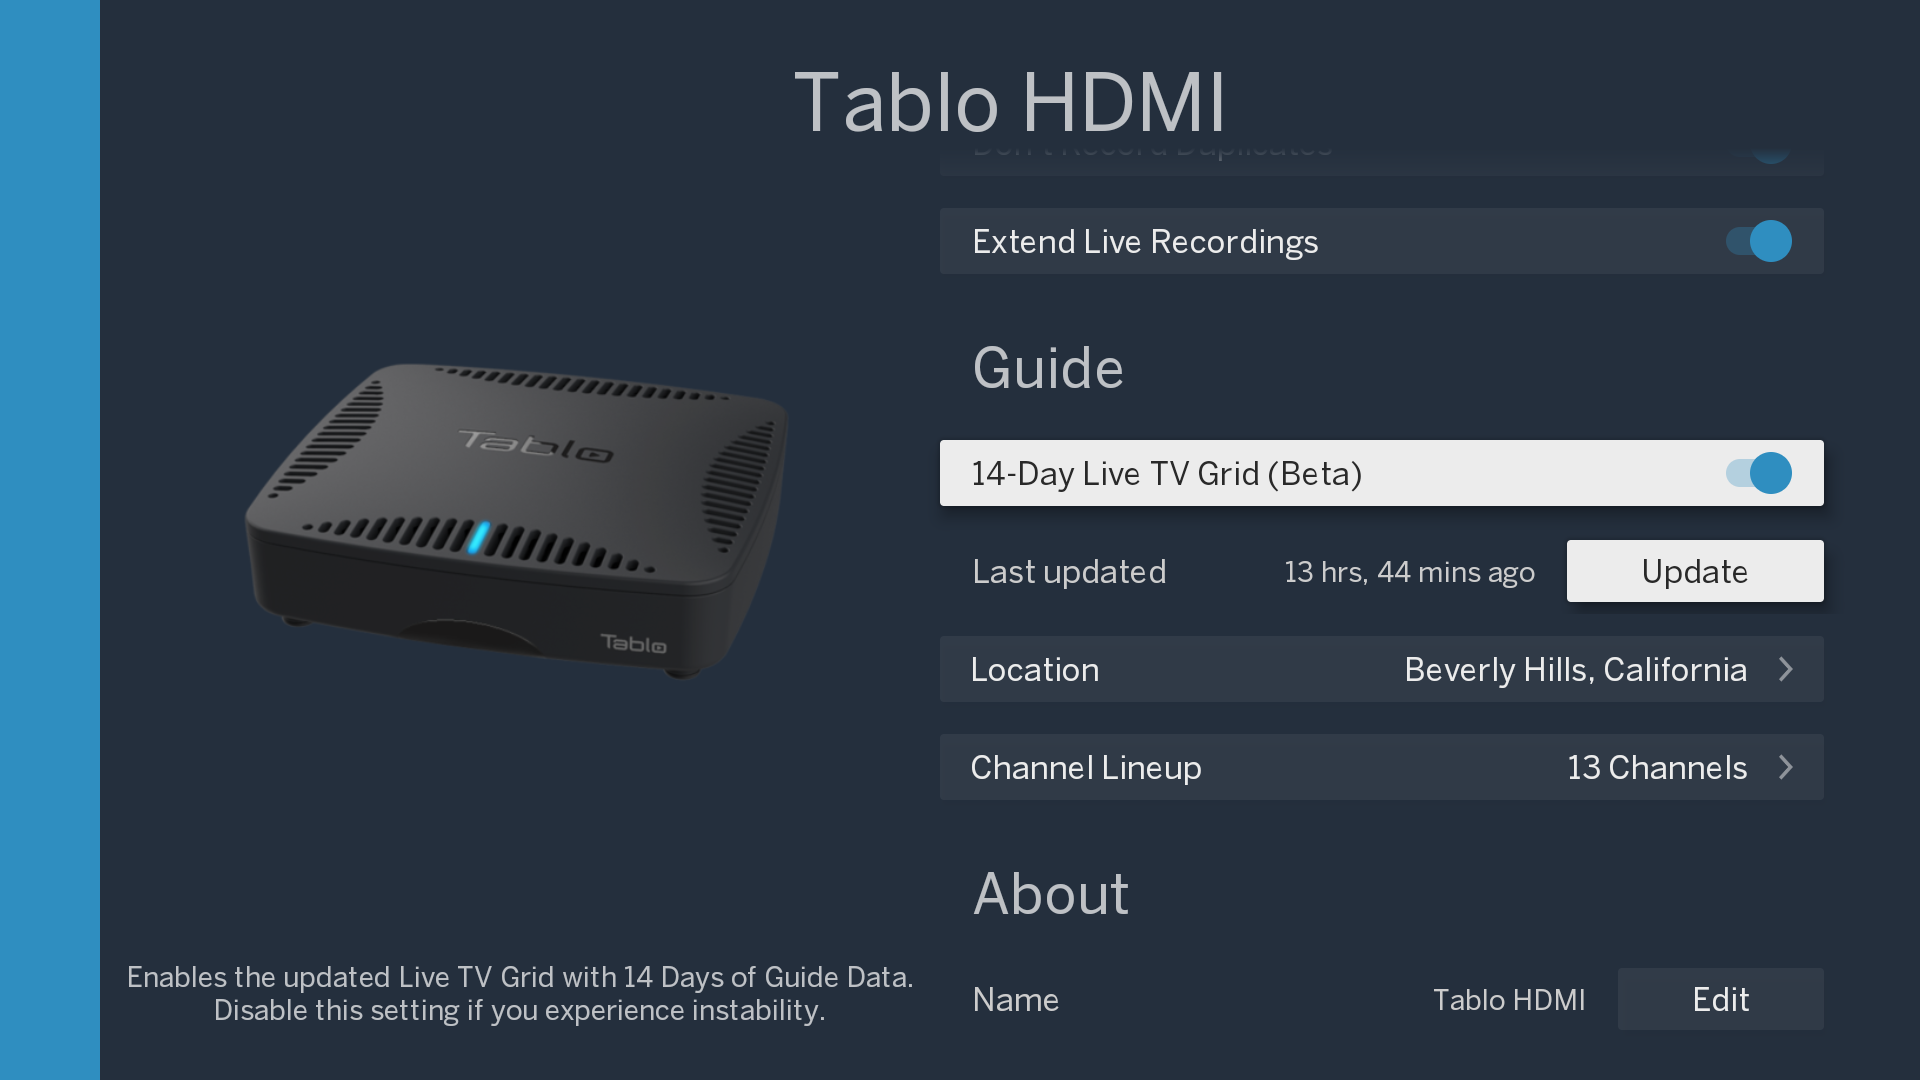 tablo_hdmi_settings_guide_grid_new.png